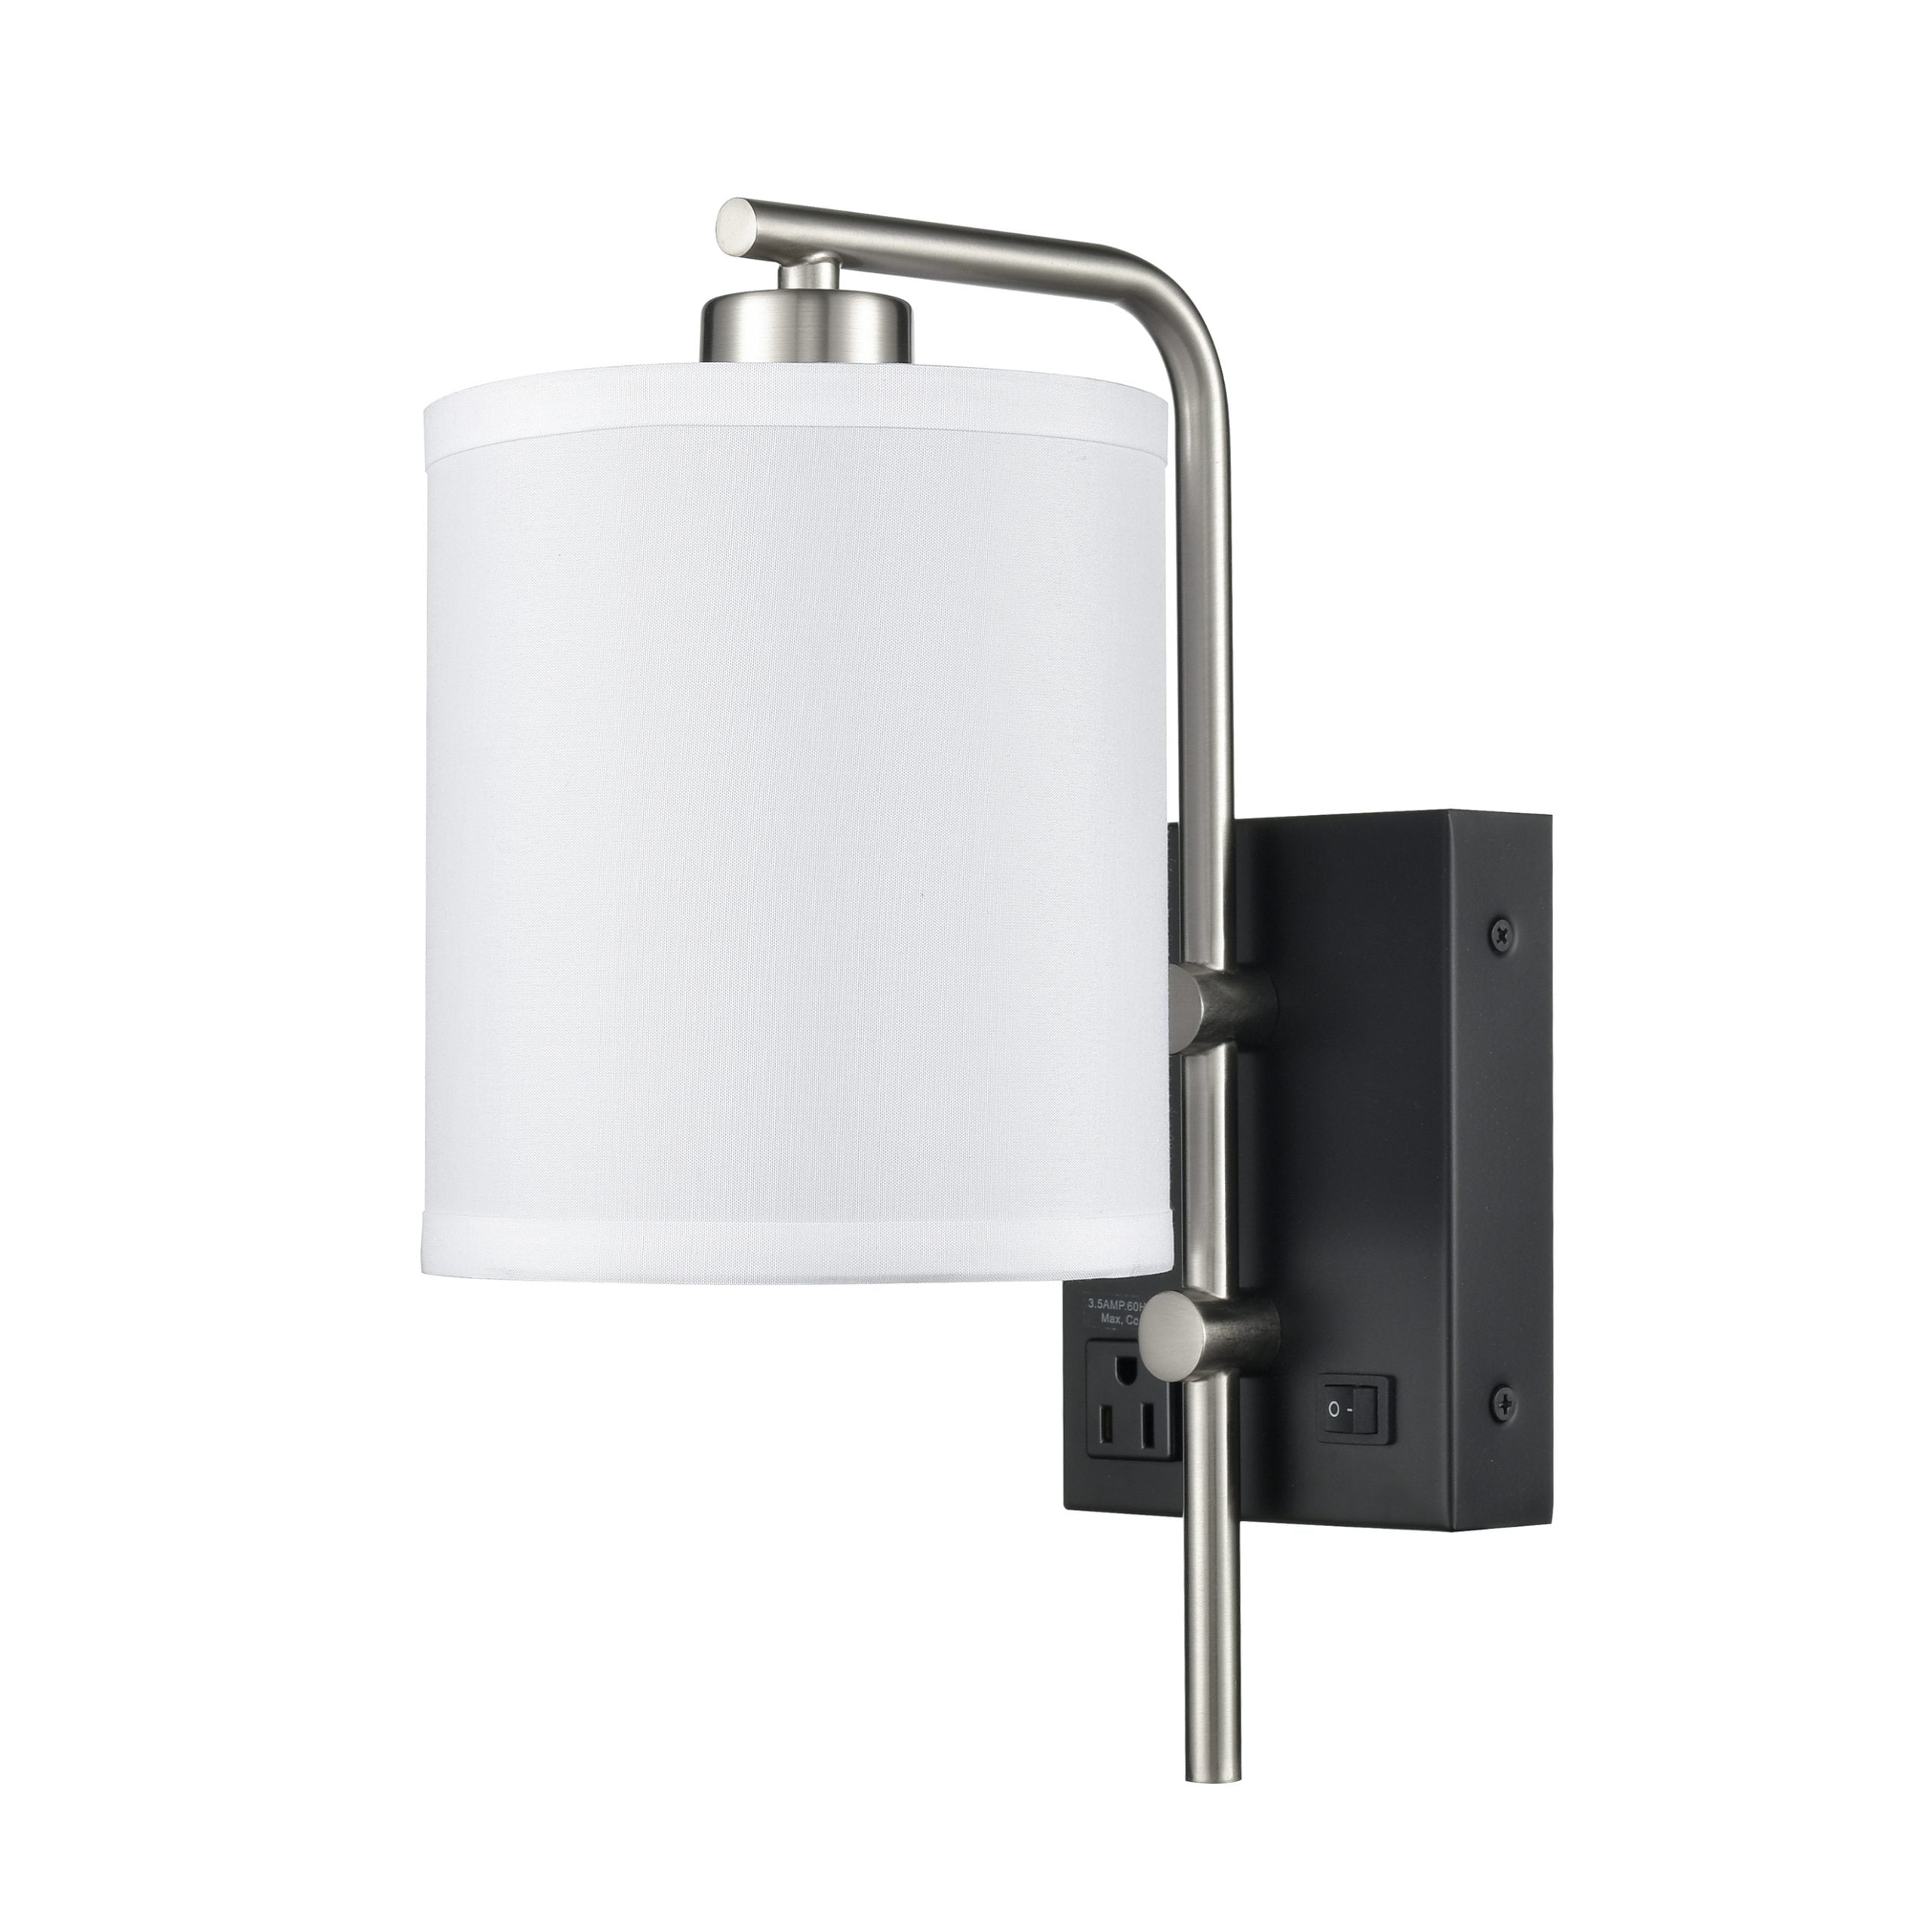 Valeria Single Wall Lamp with 1 Outlet